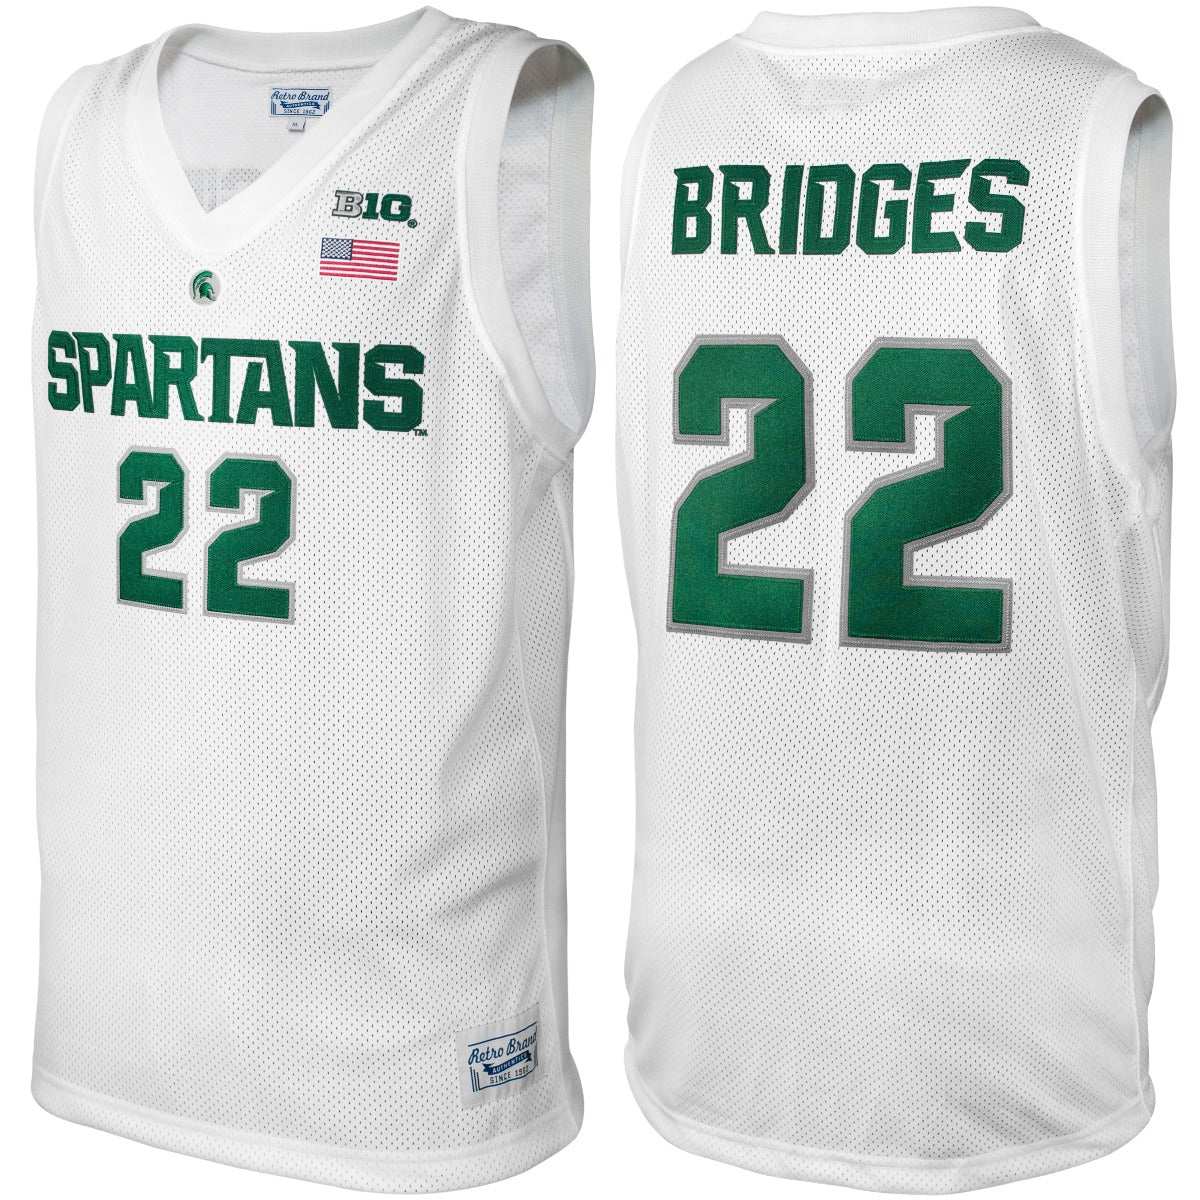 Michigan State Spartans Miles Bridges Throwback Jersey